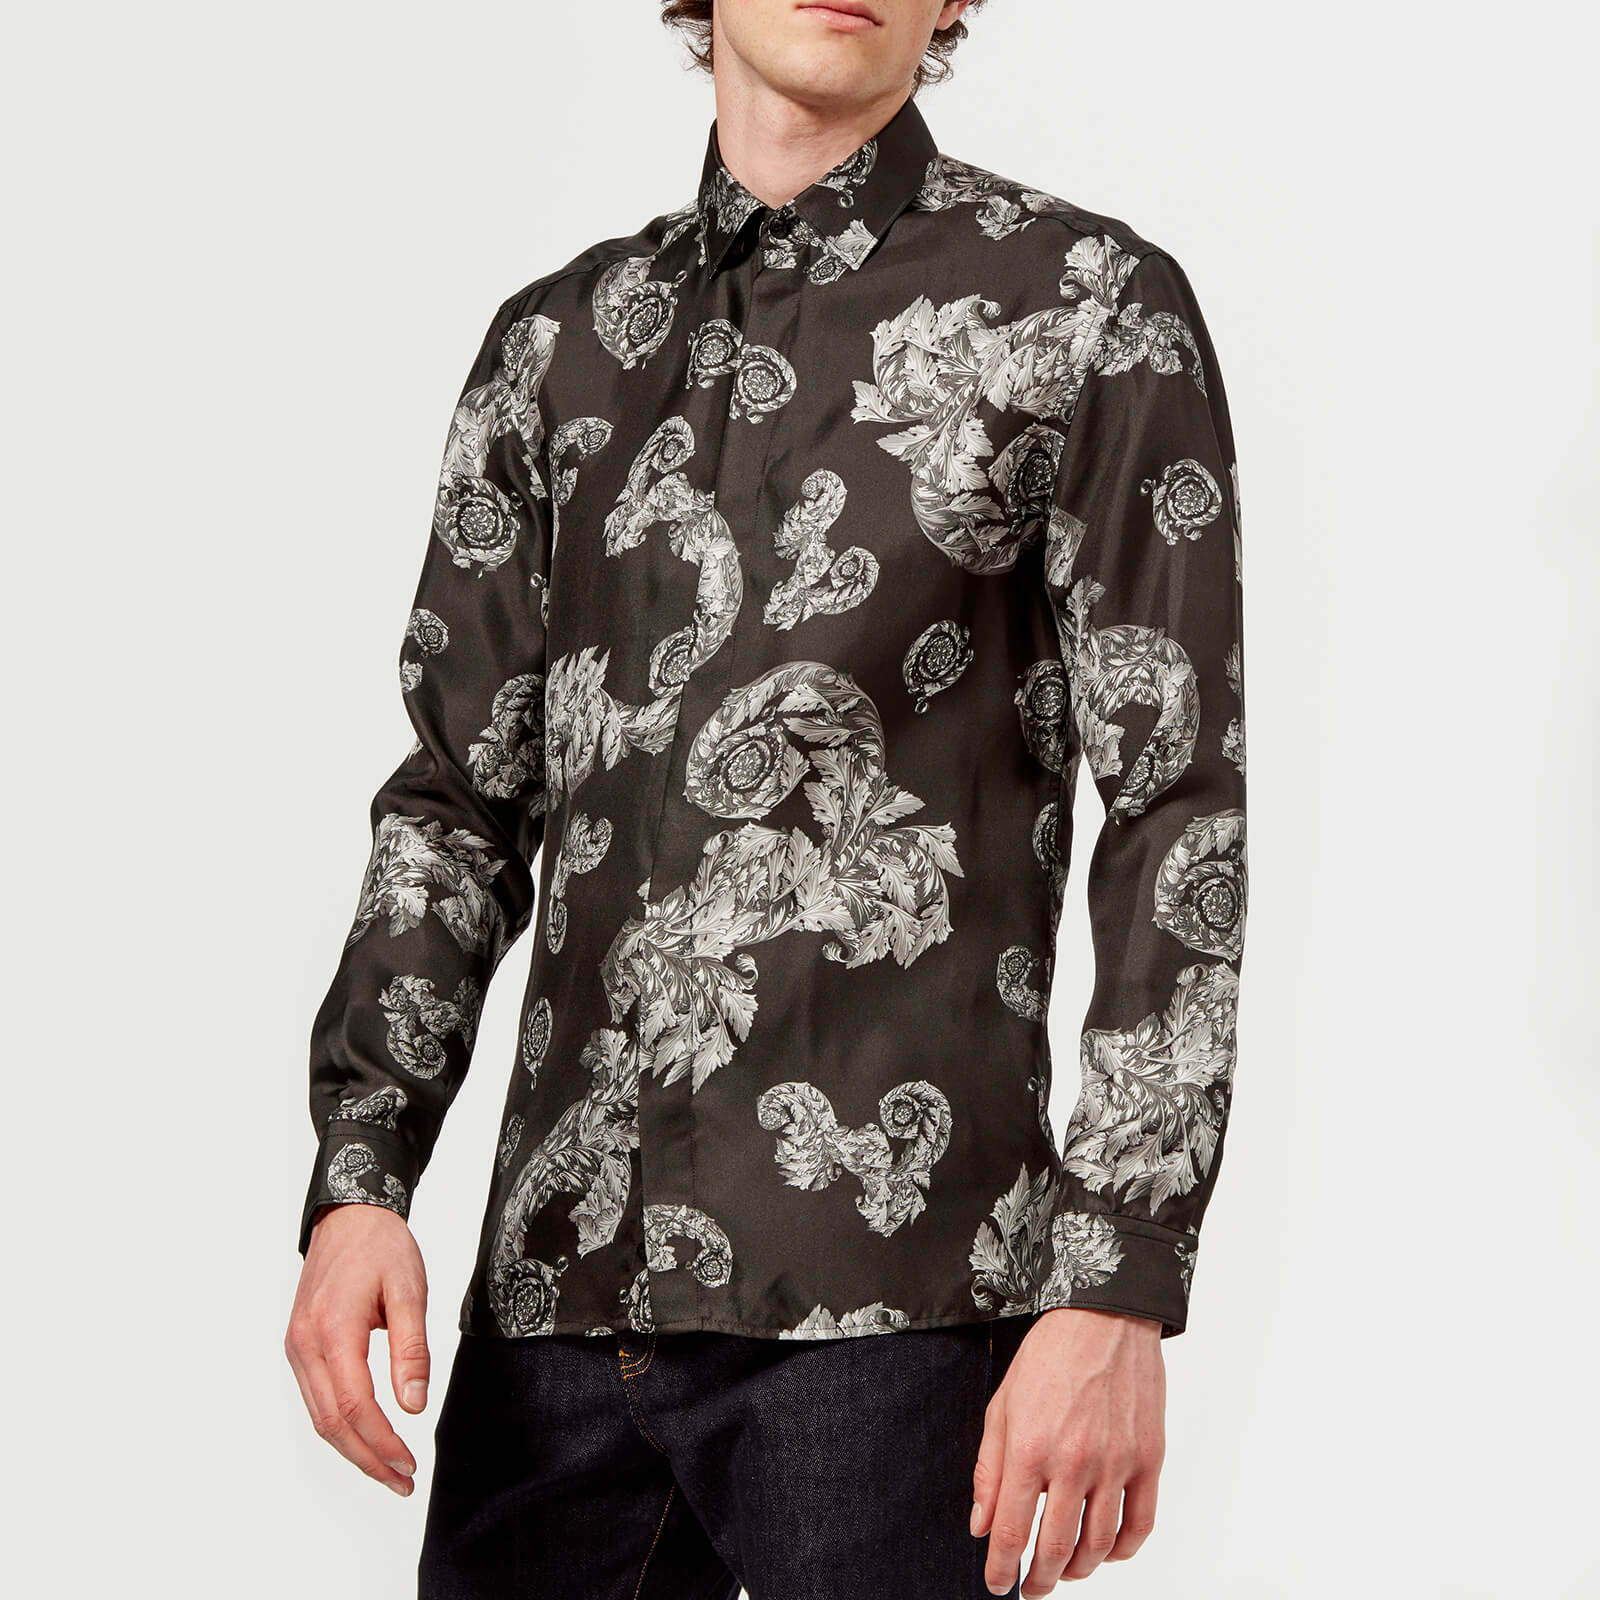 bea9f30b Versace Collection Men's Patterned Long Sleeve Shirt - Grigio Mens Clothing  | TheHut.com